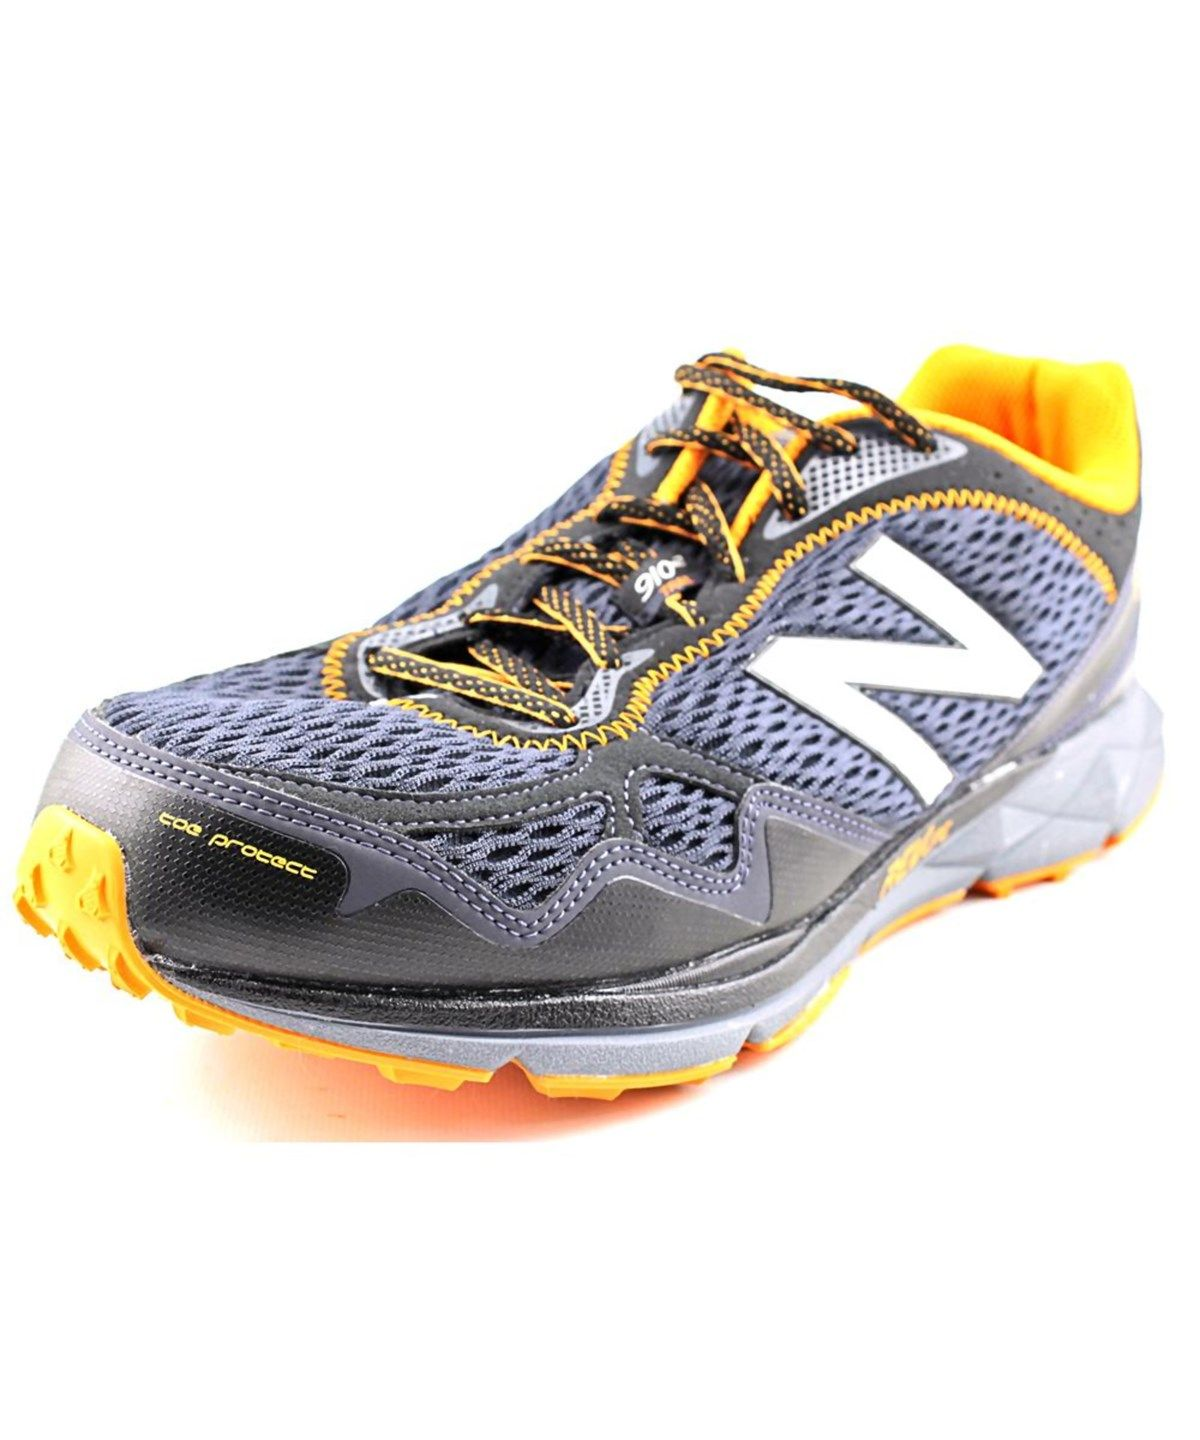 NEW BALANCE NEW BALANCE MT910  4E ROUND TOE SYNTHETIC  RUNNING SHOE'. #newbalance #shoes #sneakers